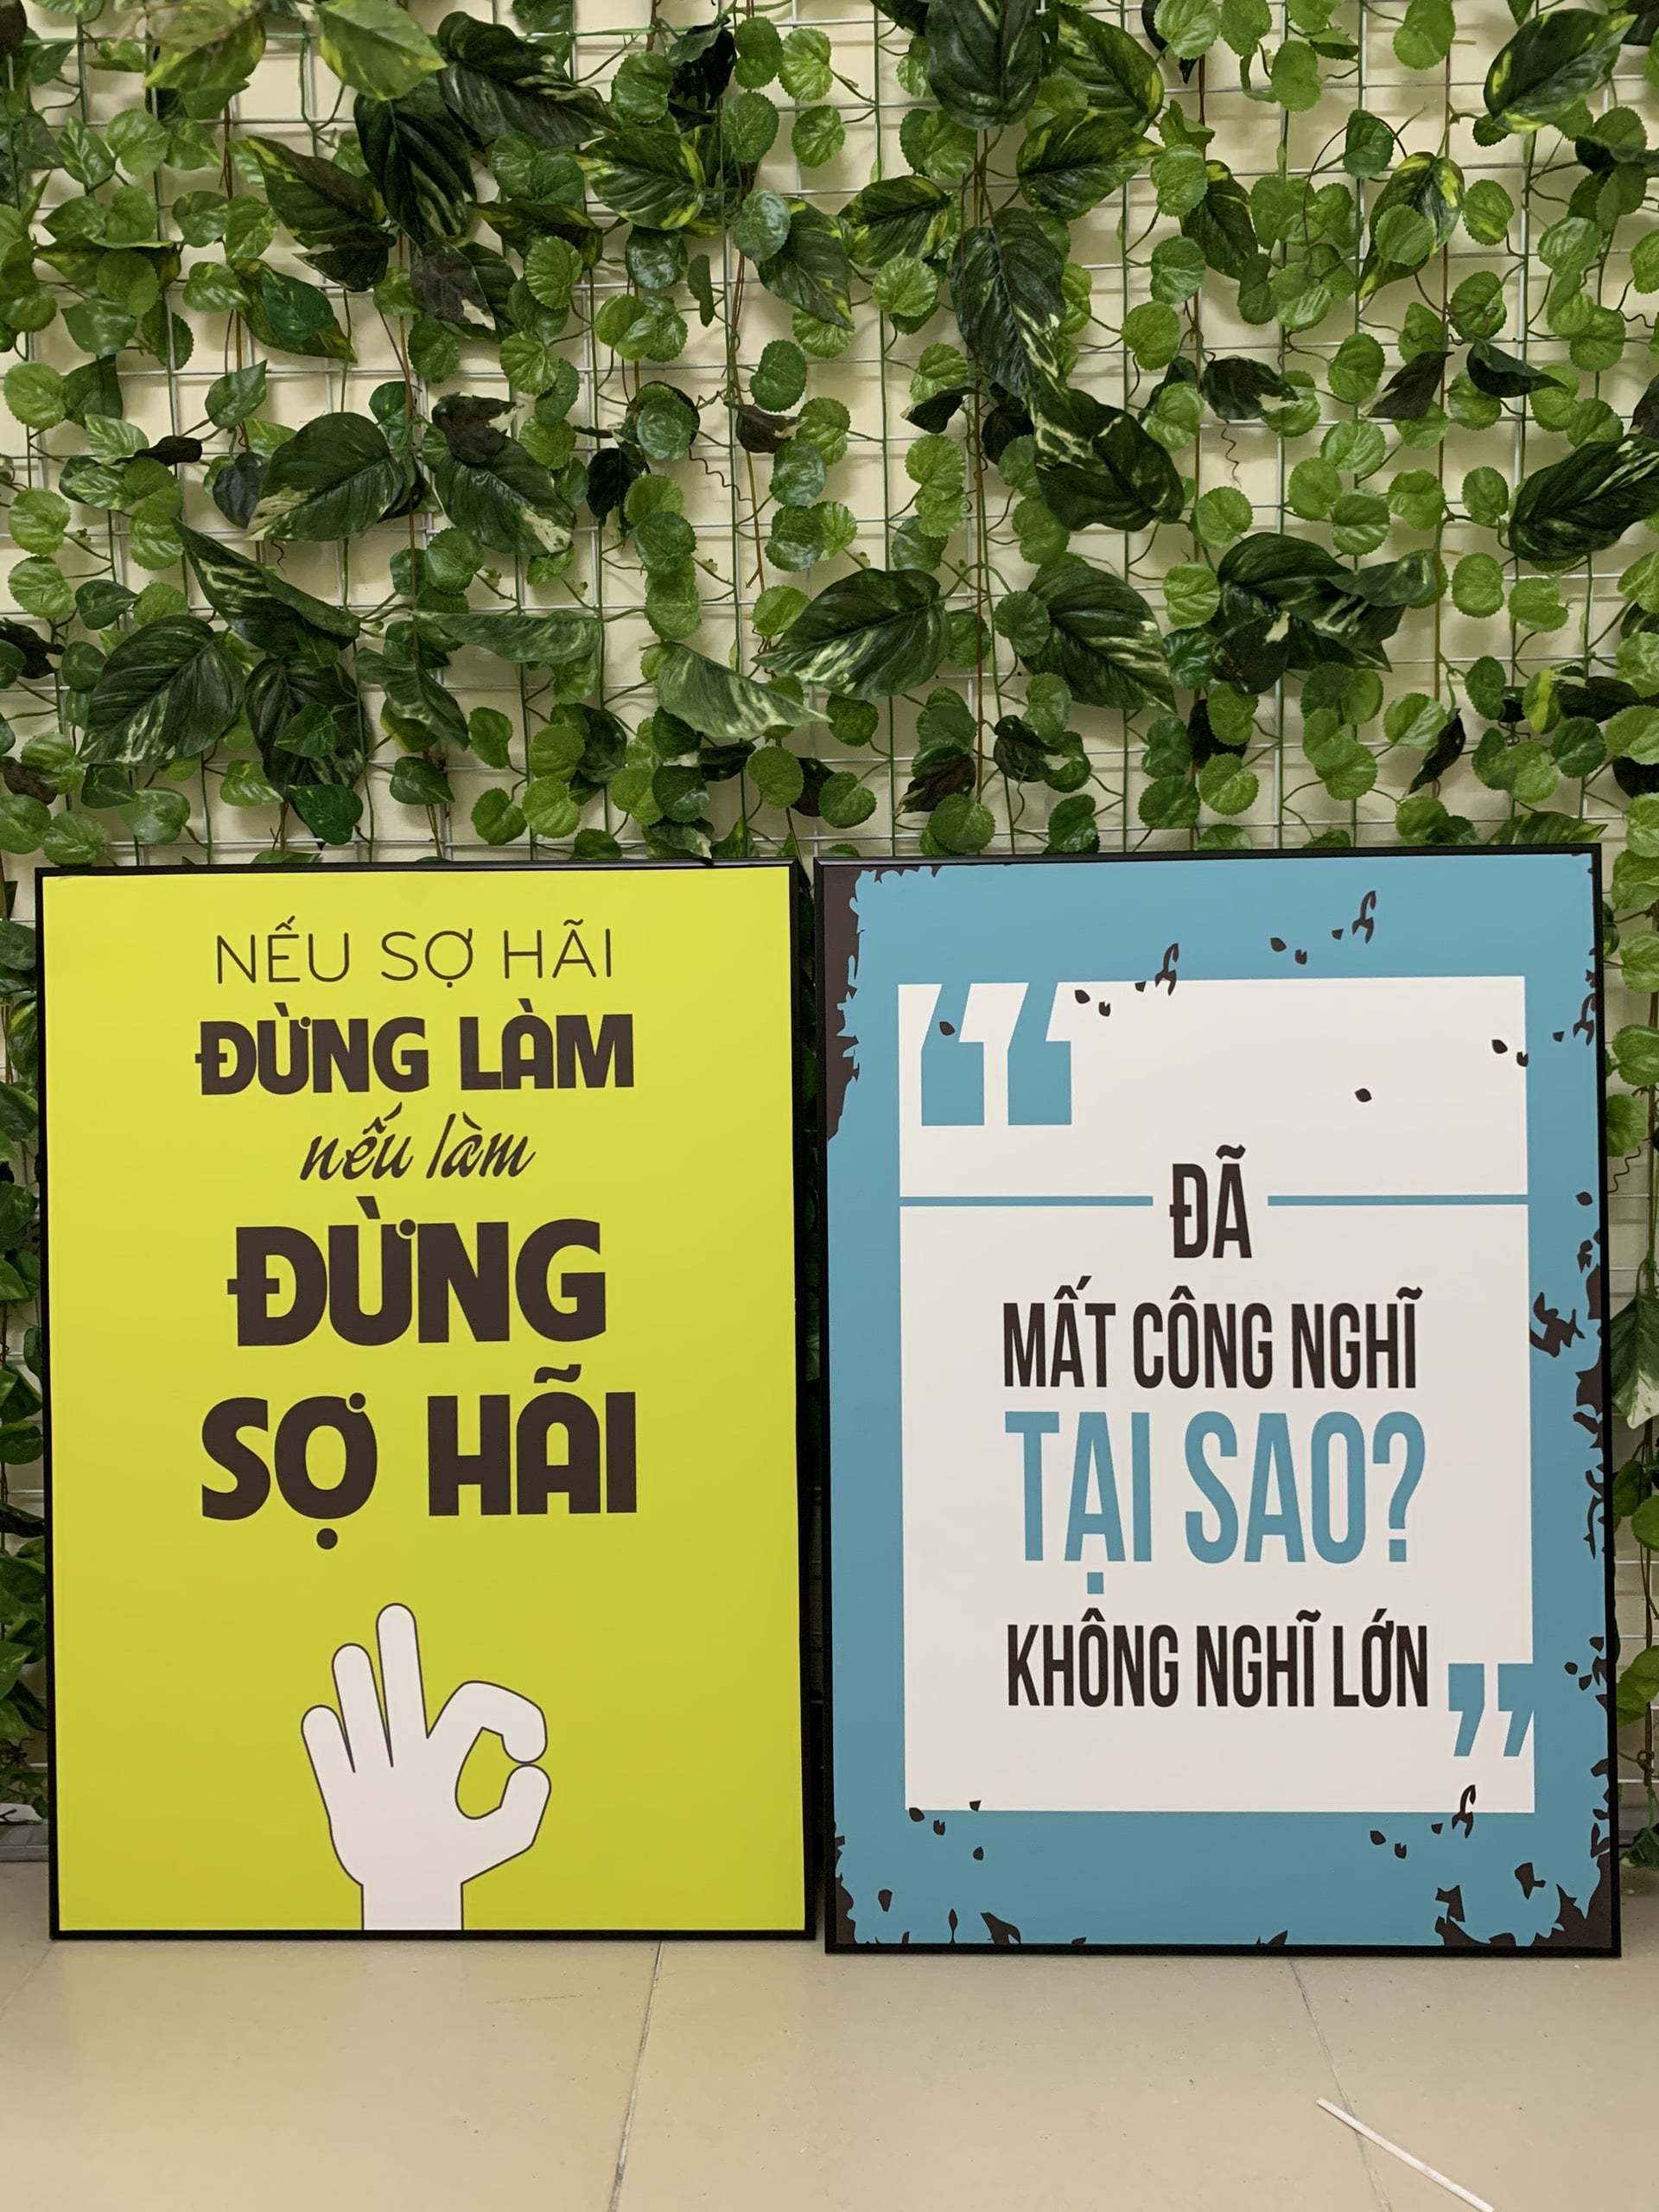 Image #1 from hạ